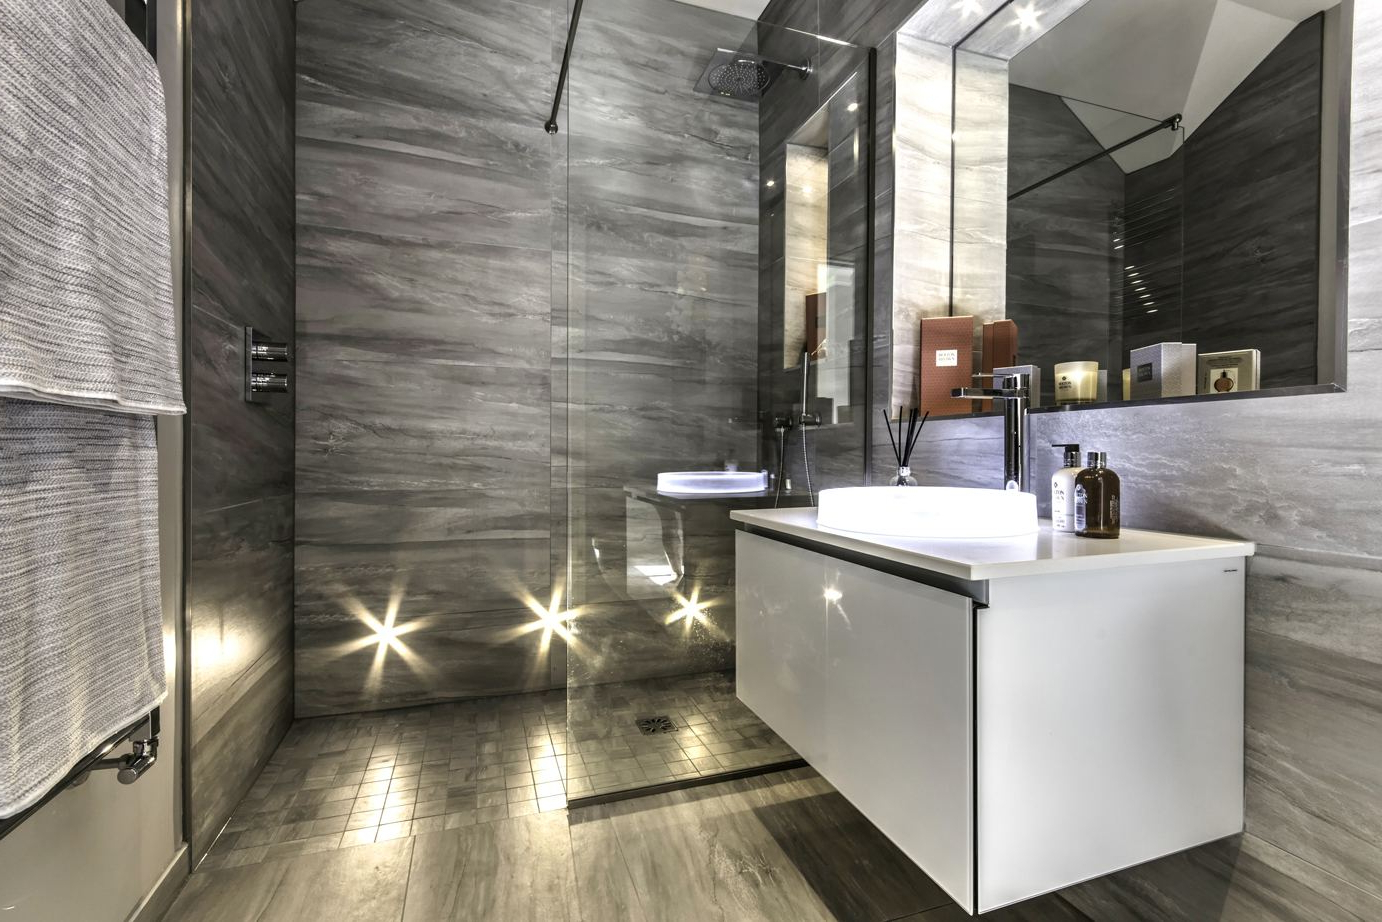 Luxury Bathroom Showers Unique Wall Mirror Three Holes Stylish Led With Regard To Fashionable Fancy Bathroom Wall Mirrors (Gallery 9 of 20)